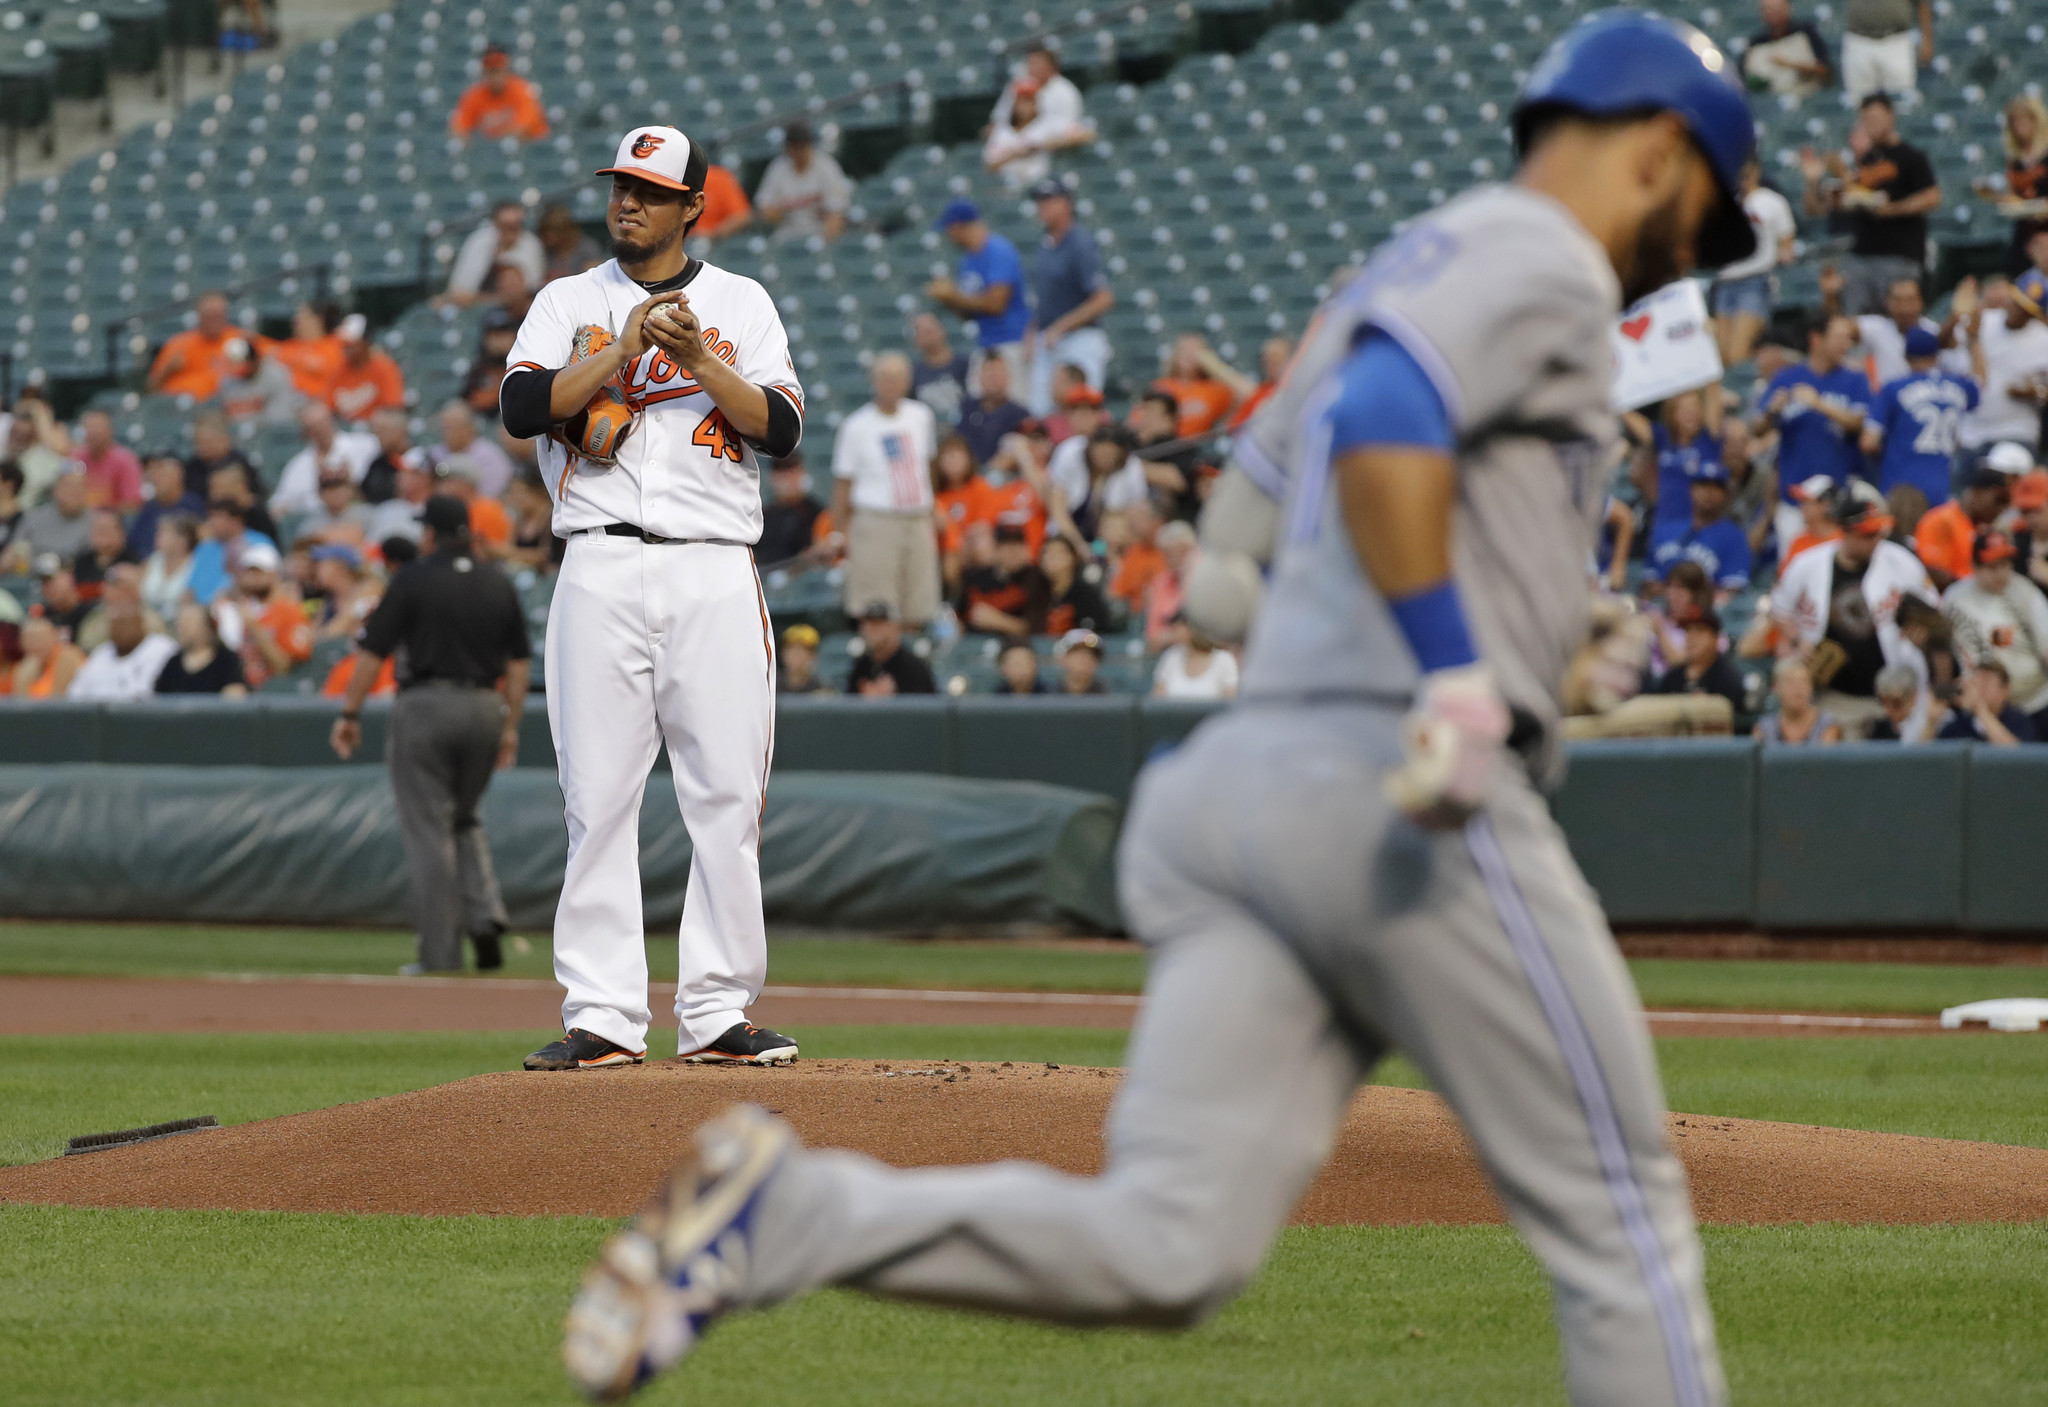 Bal-early-projections-have-orioles-rotation-among-game-s-worst-20161128